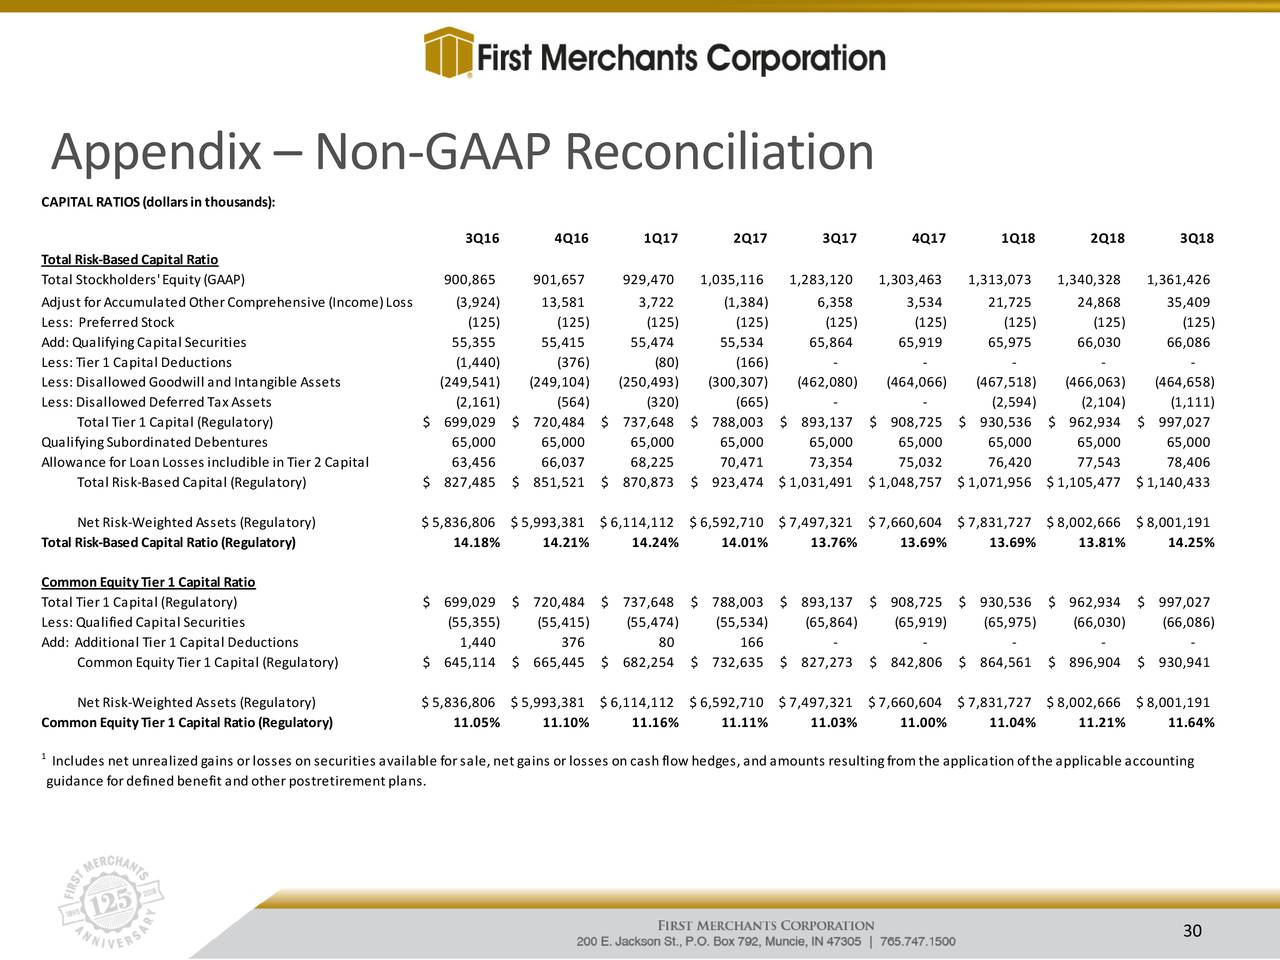 First Merchants Corporation 2018 Q3